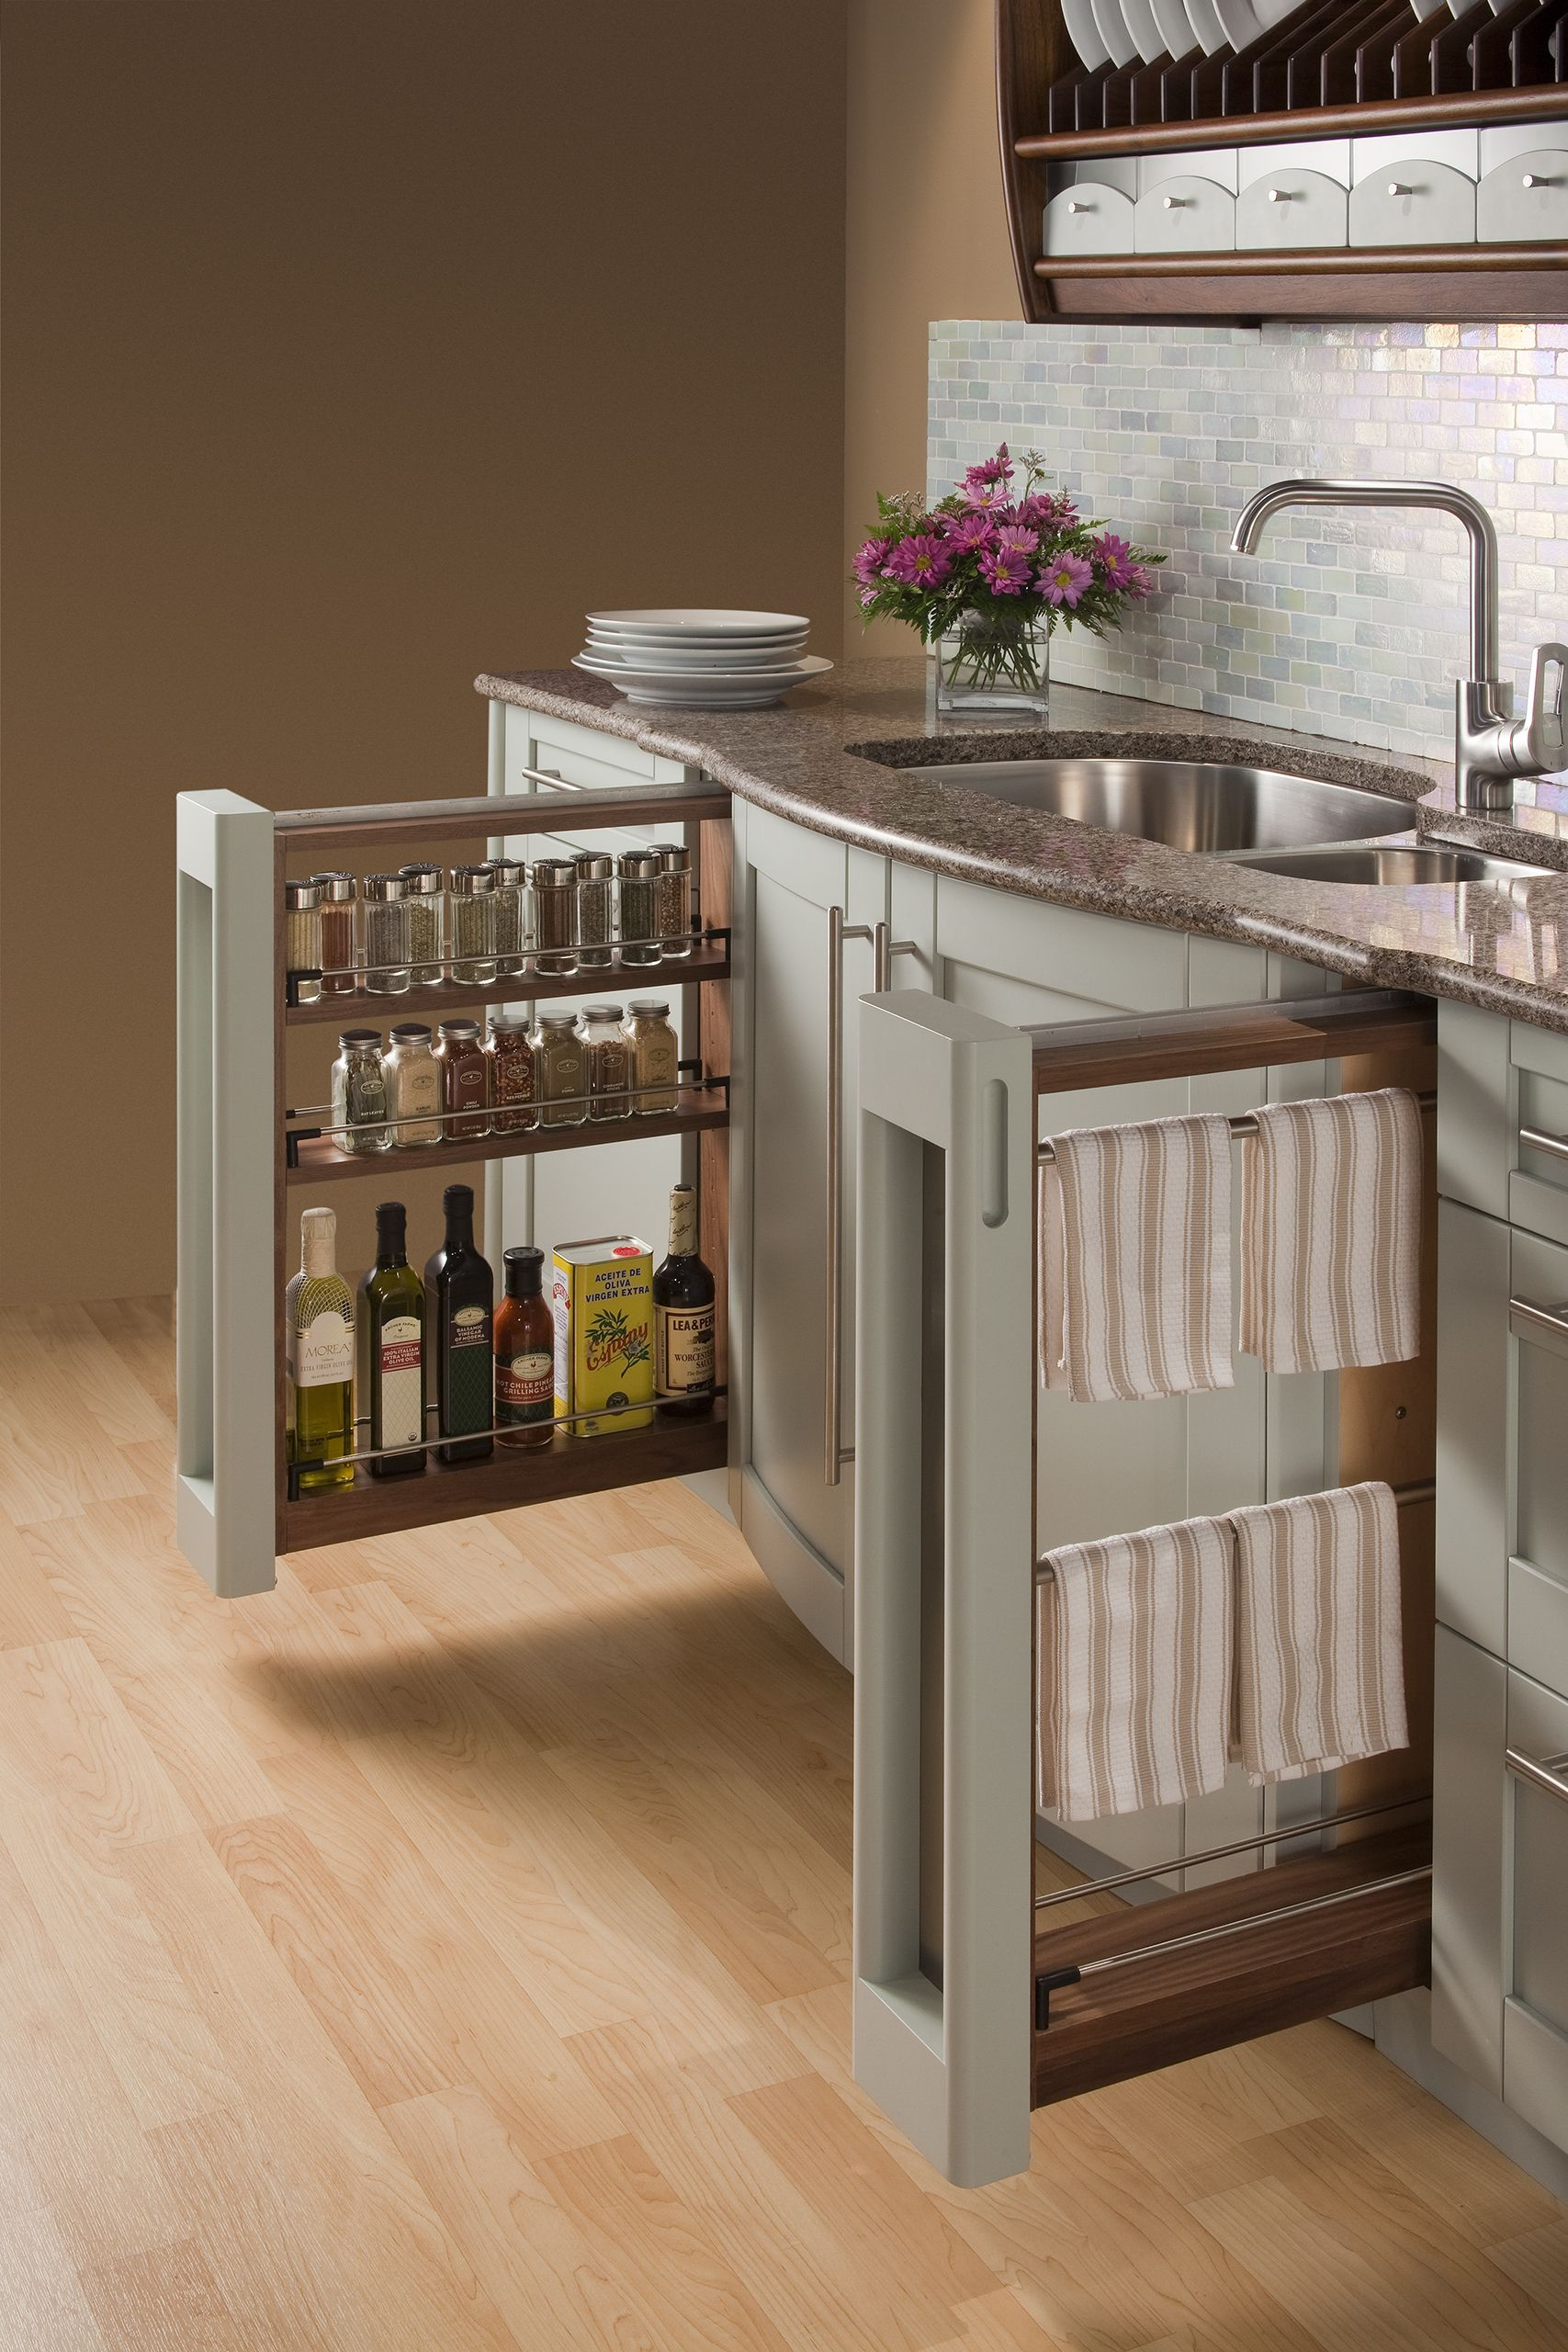 Cabinet Base Pulloutsu2014spice Rack And Towel Rack. Rutt Handcrafted Cabinetry.  #csikitchen